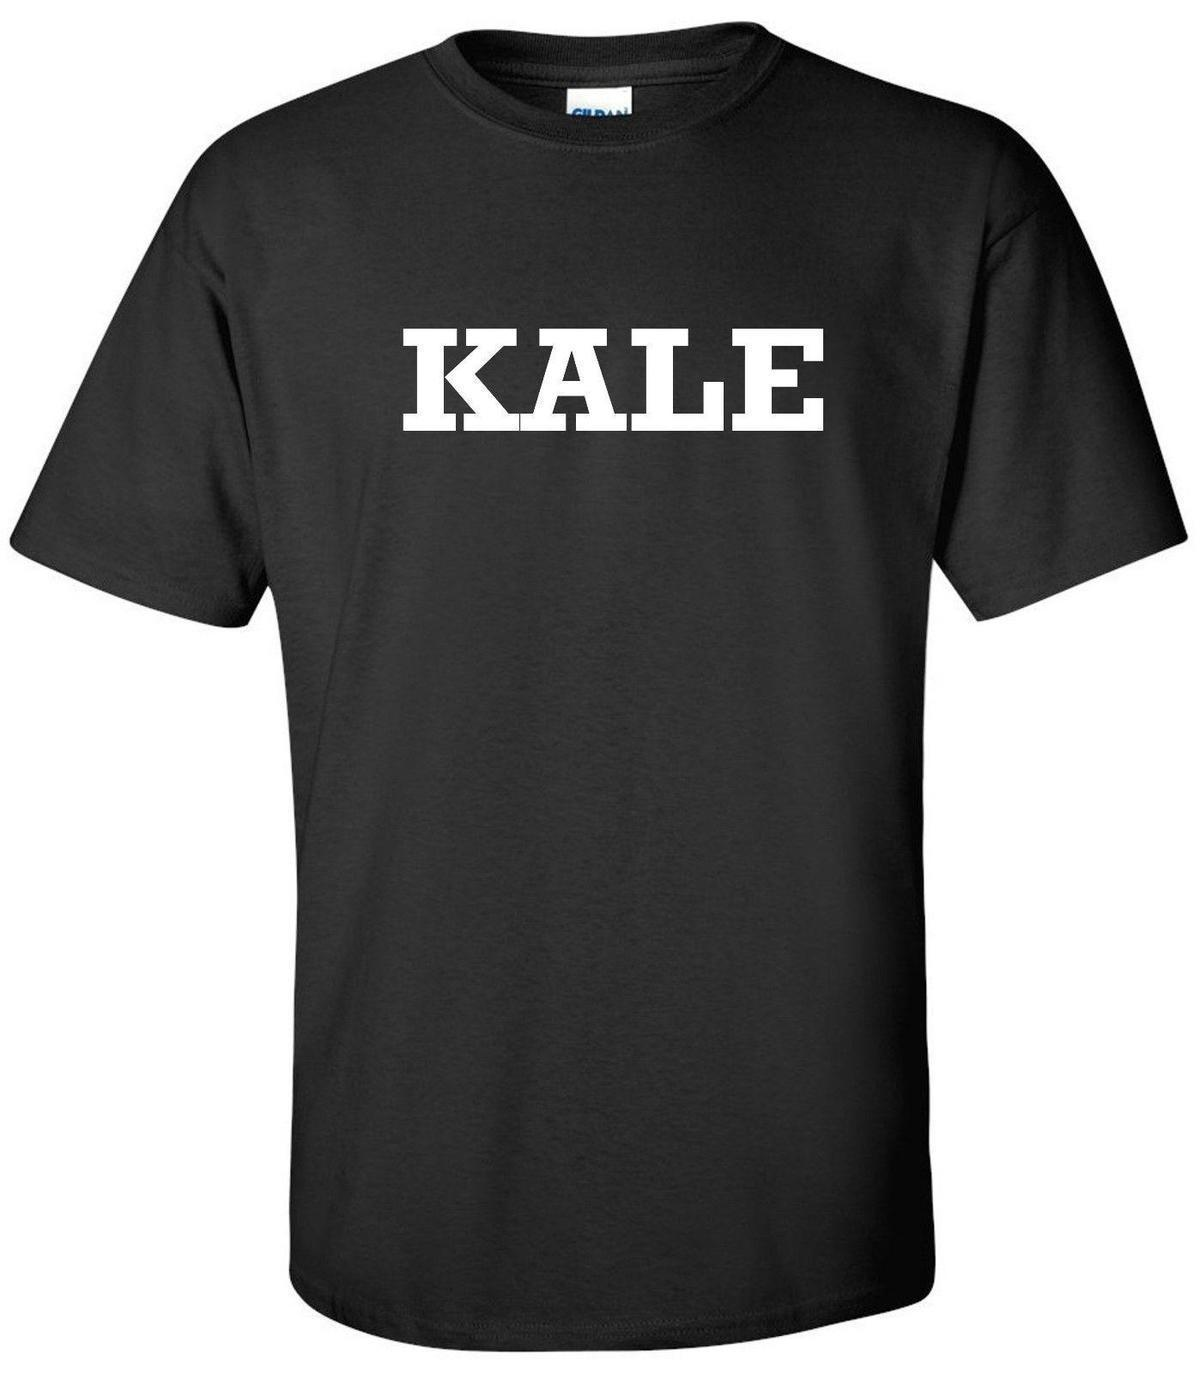 e5f4e57a27 KALE T SHIRT Vegetarian Vegan Cook Chef Funny Shirt Shirts With Design  Unique T Shirts For Sale From Jie12, $14.67| DHgate.Com